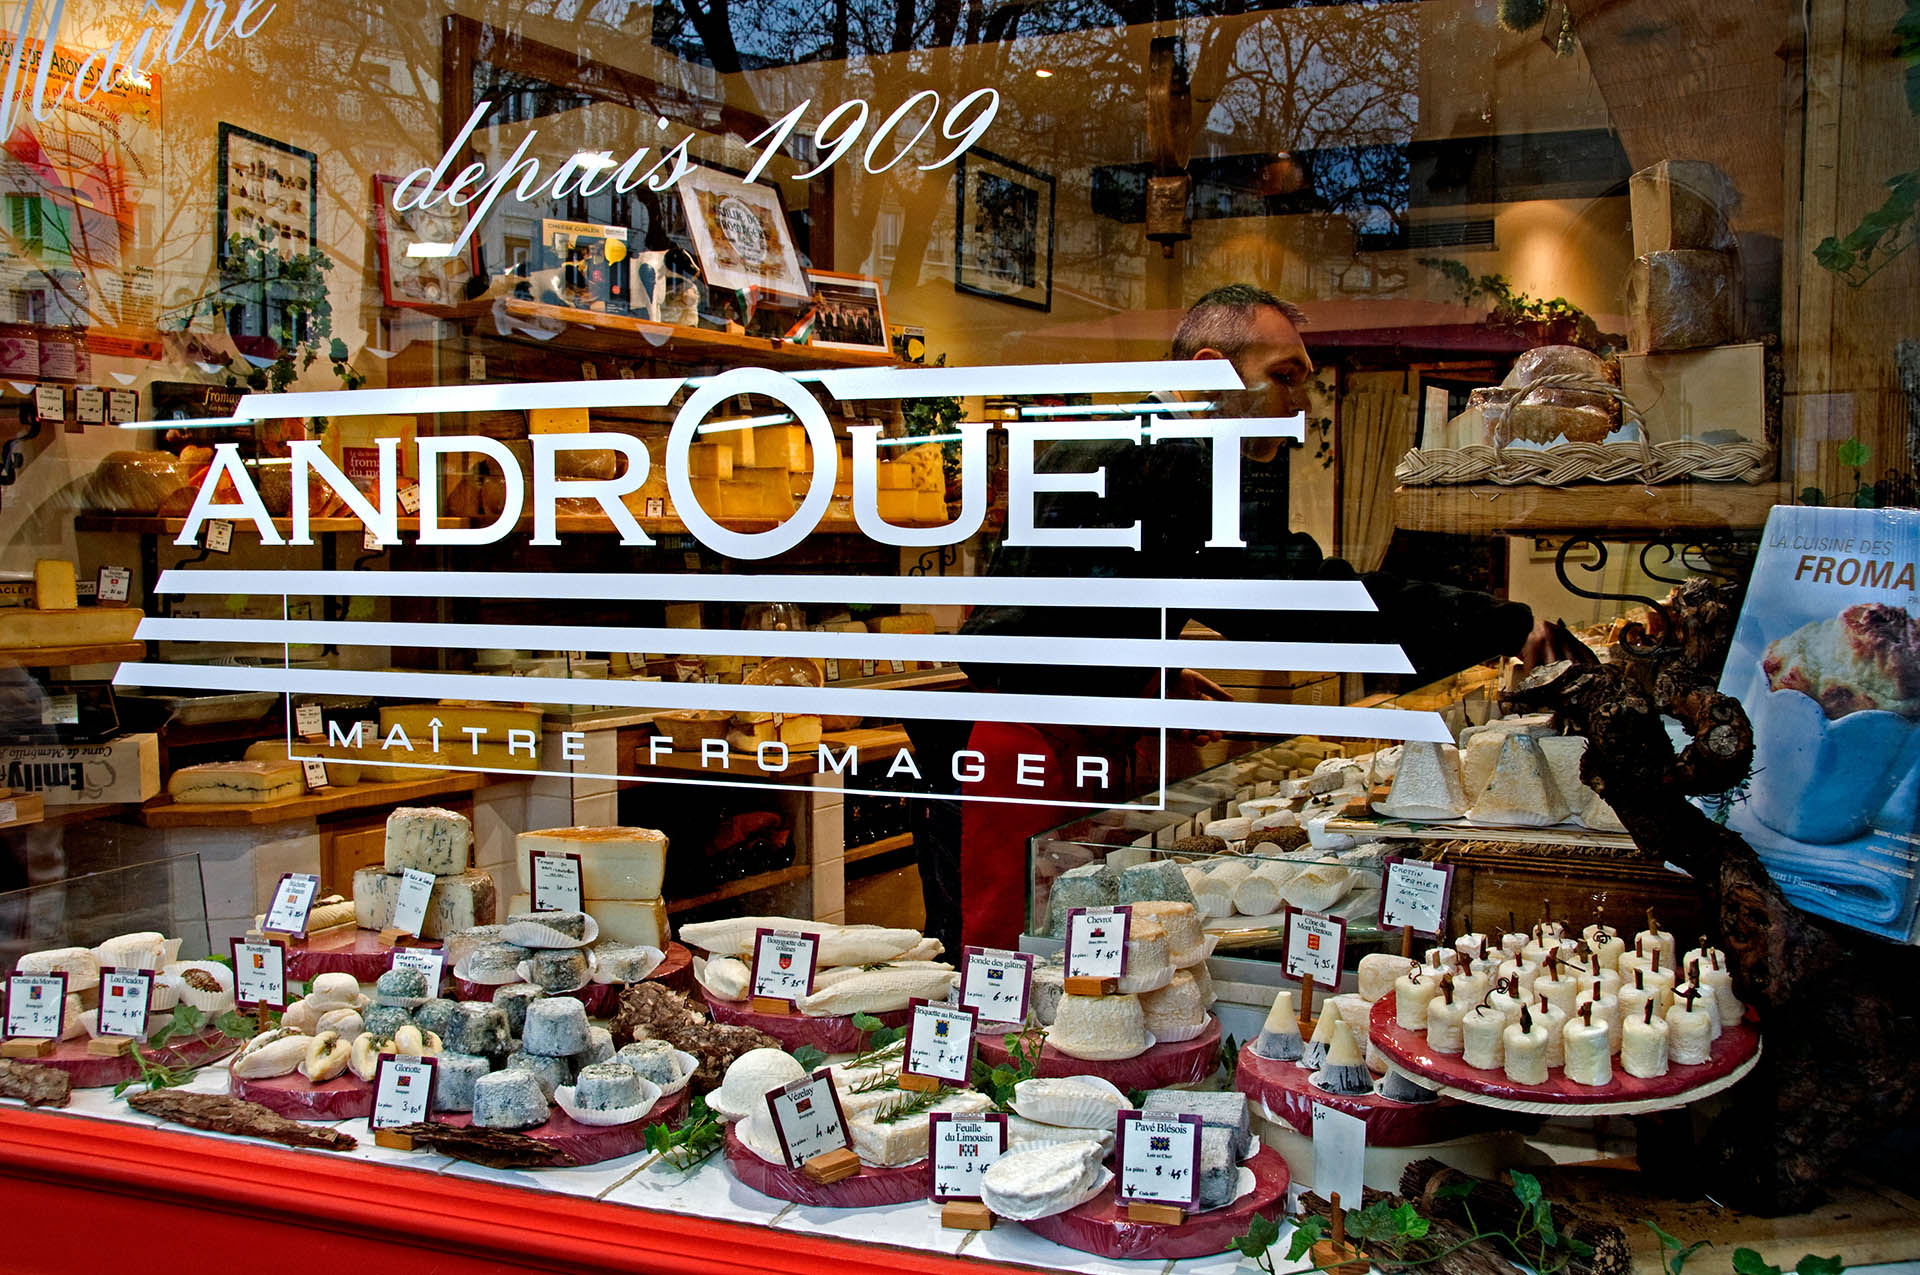 Androuet cheese shop in Paris